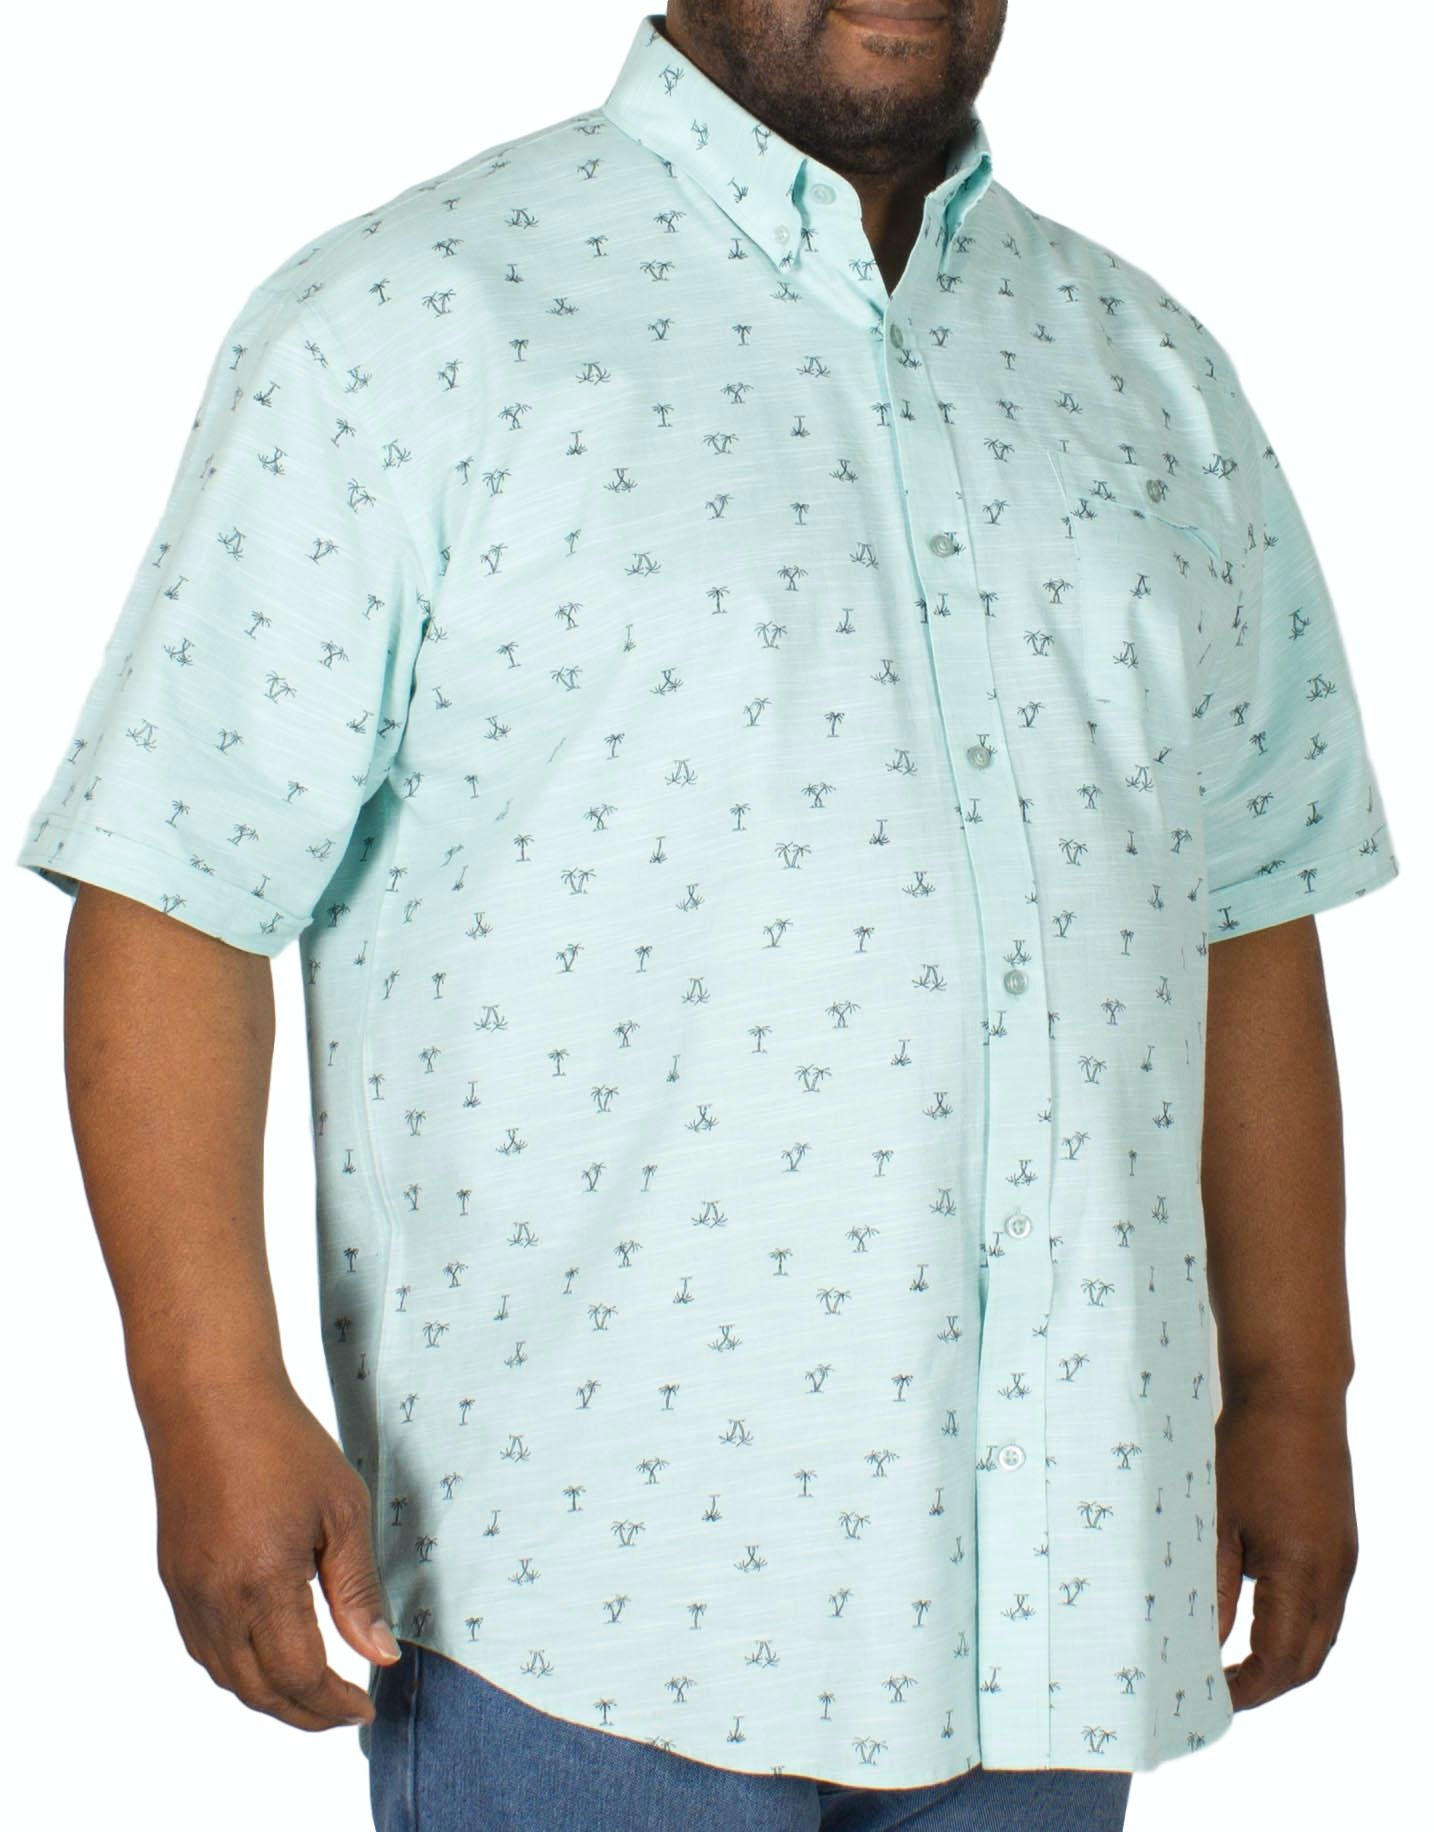 Espionage Palm Print Short Sleeve Shirt Mint